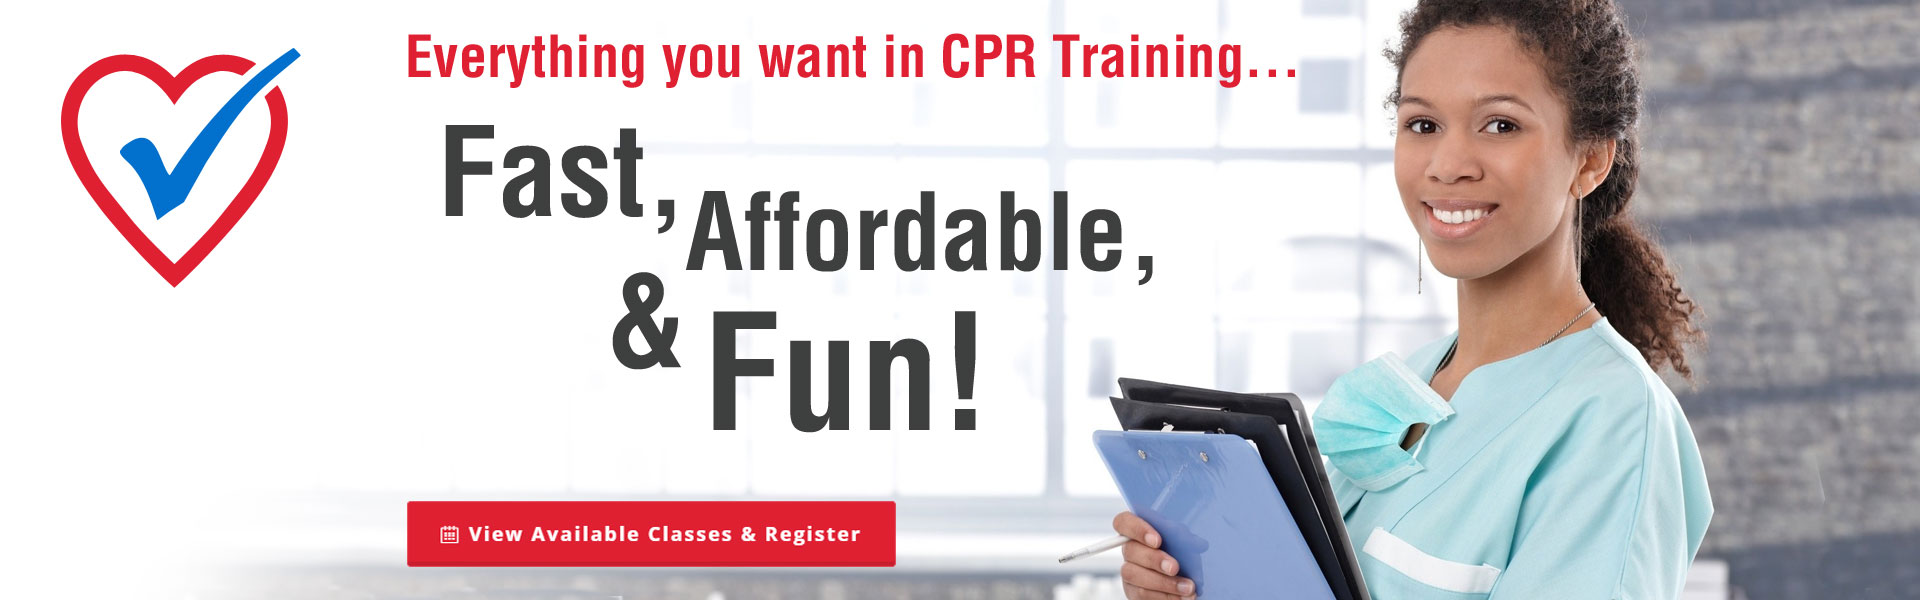 CPR Choice is Fast, Affordable, and Fun!